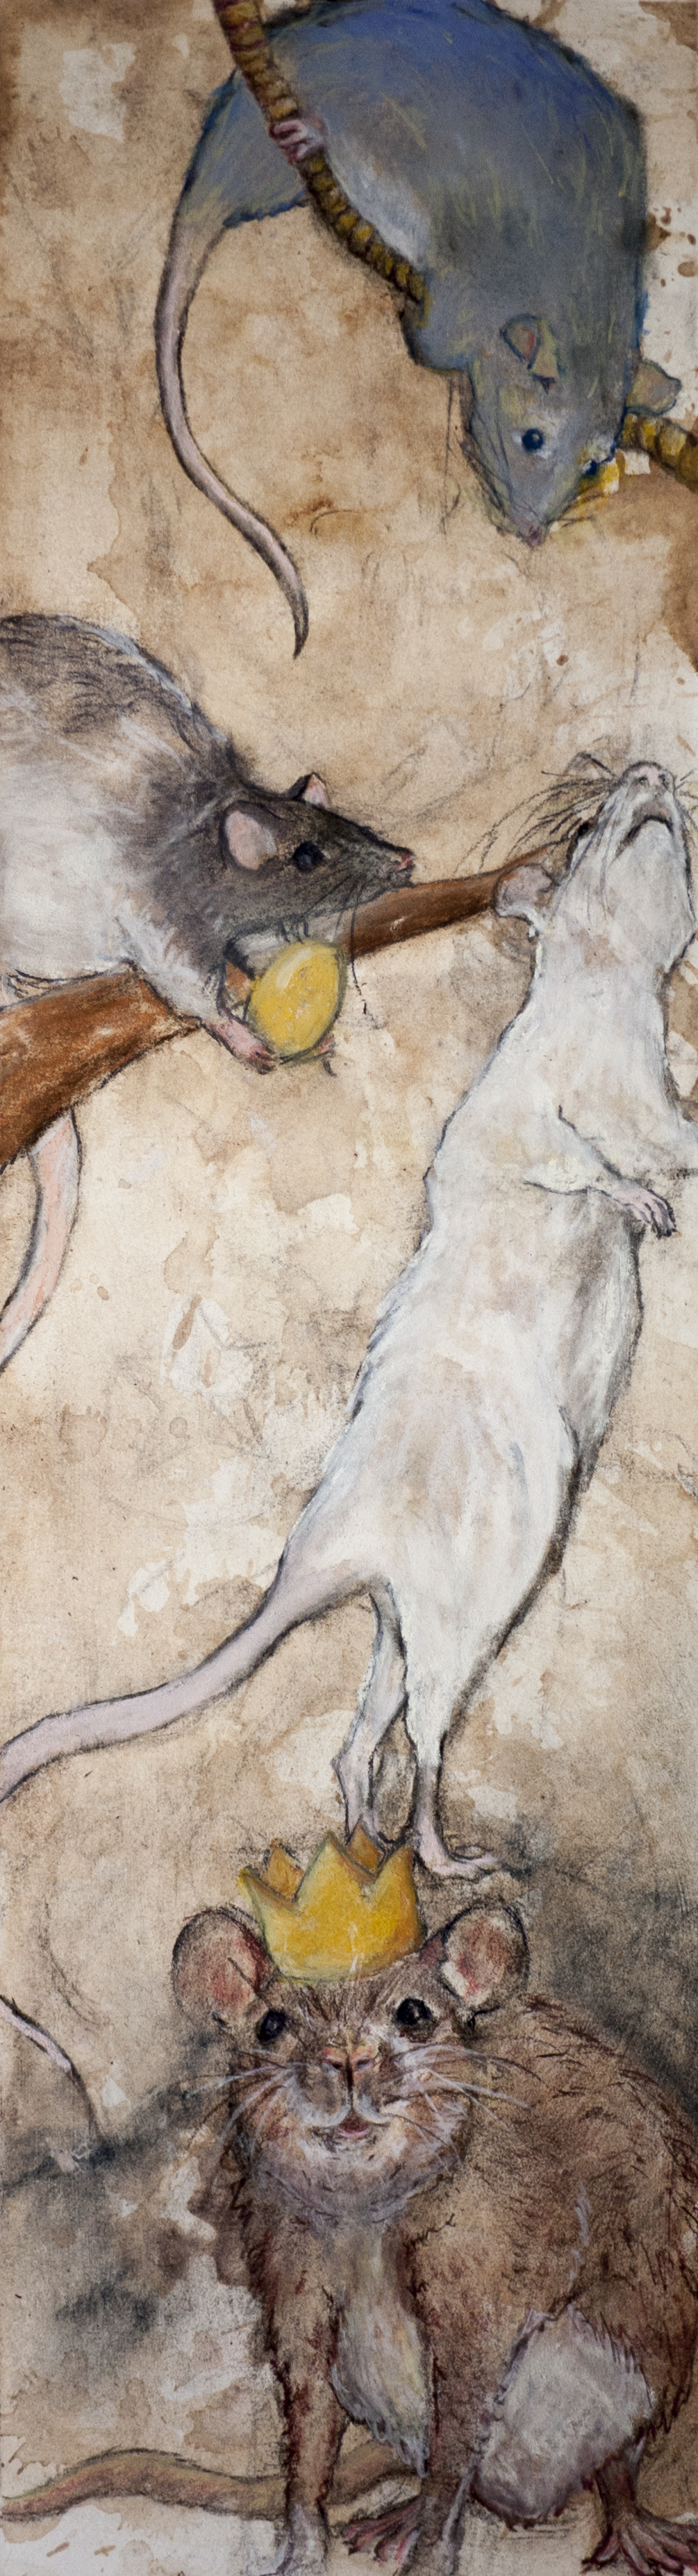 Four rats of various breeds arranged on a long format picture. The middle rat is holding a golden egg, and the lowest rat is wearing a god crown.